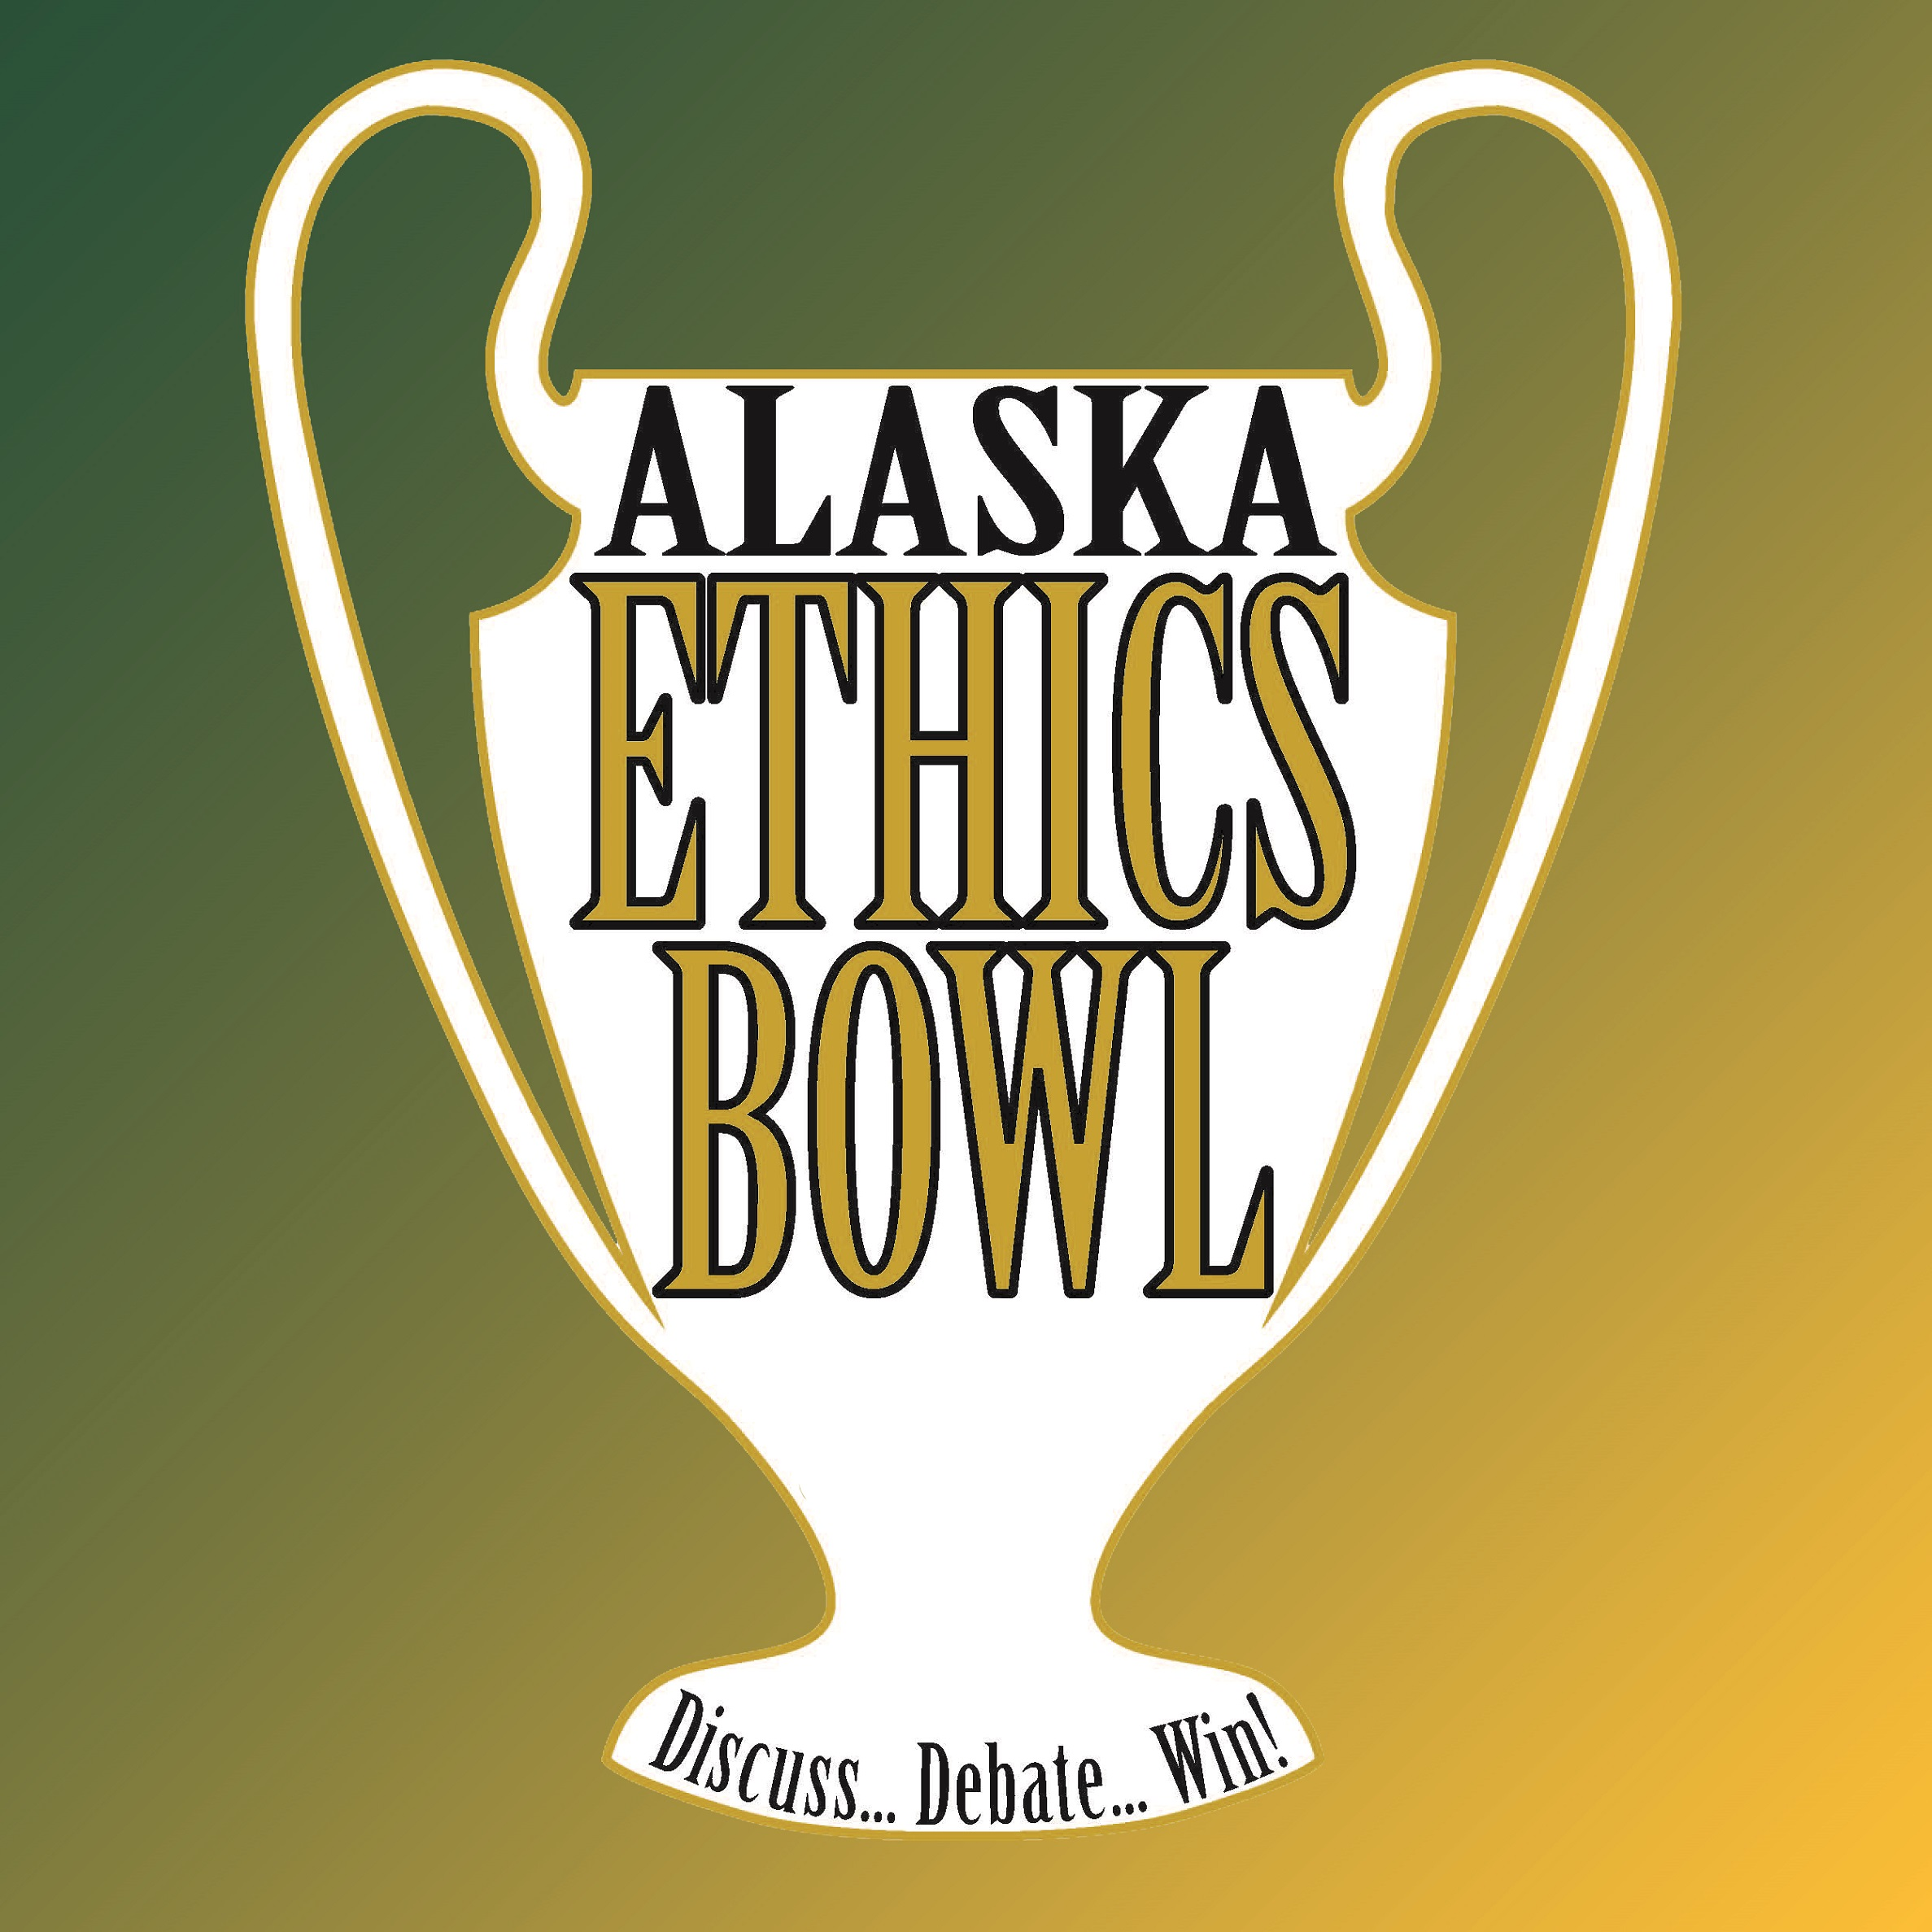 Alaska Ethics Bowl: Discuss...Debate...Win!